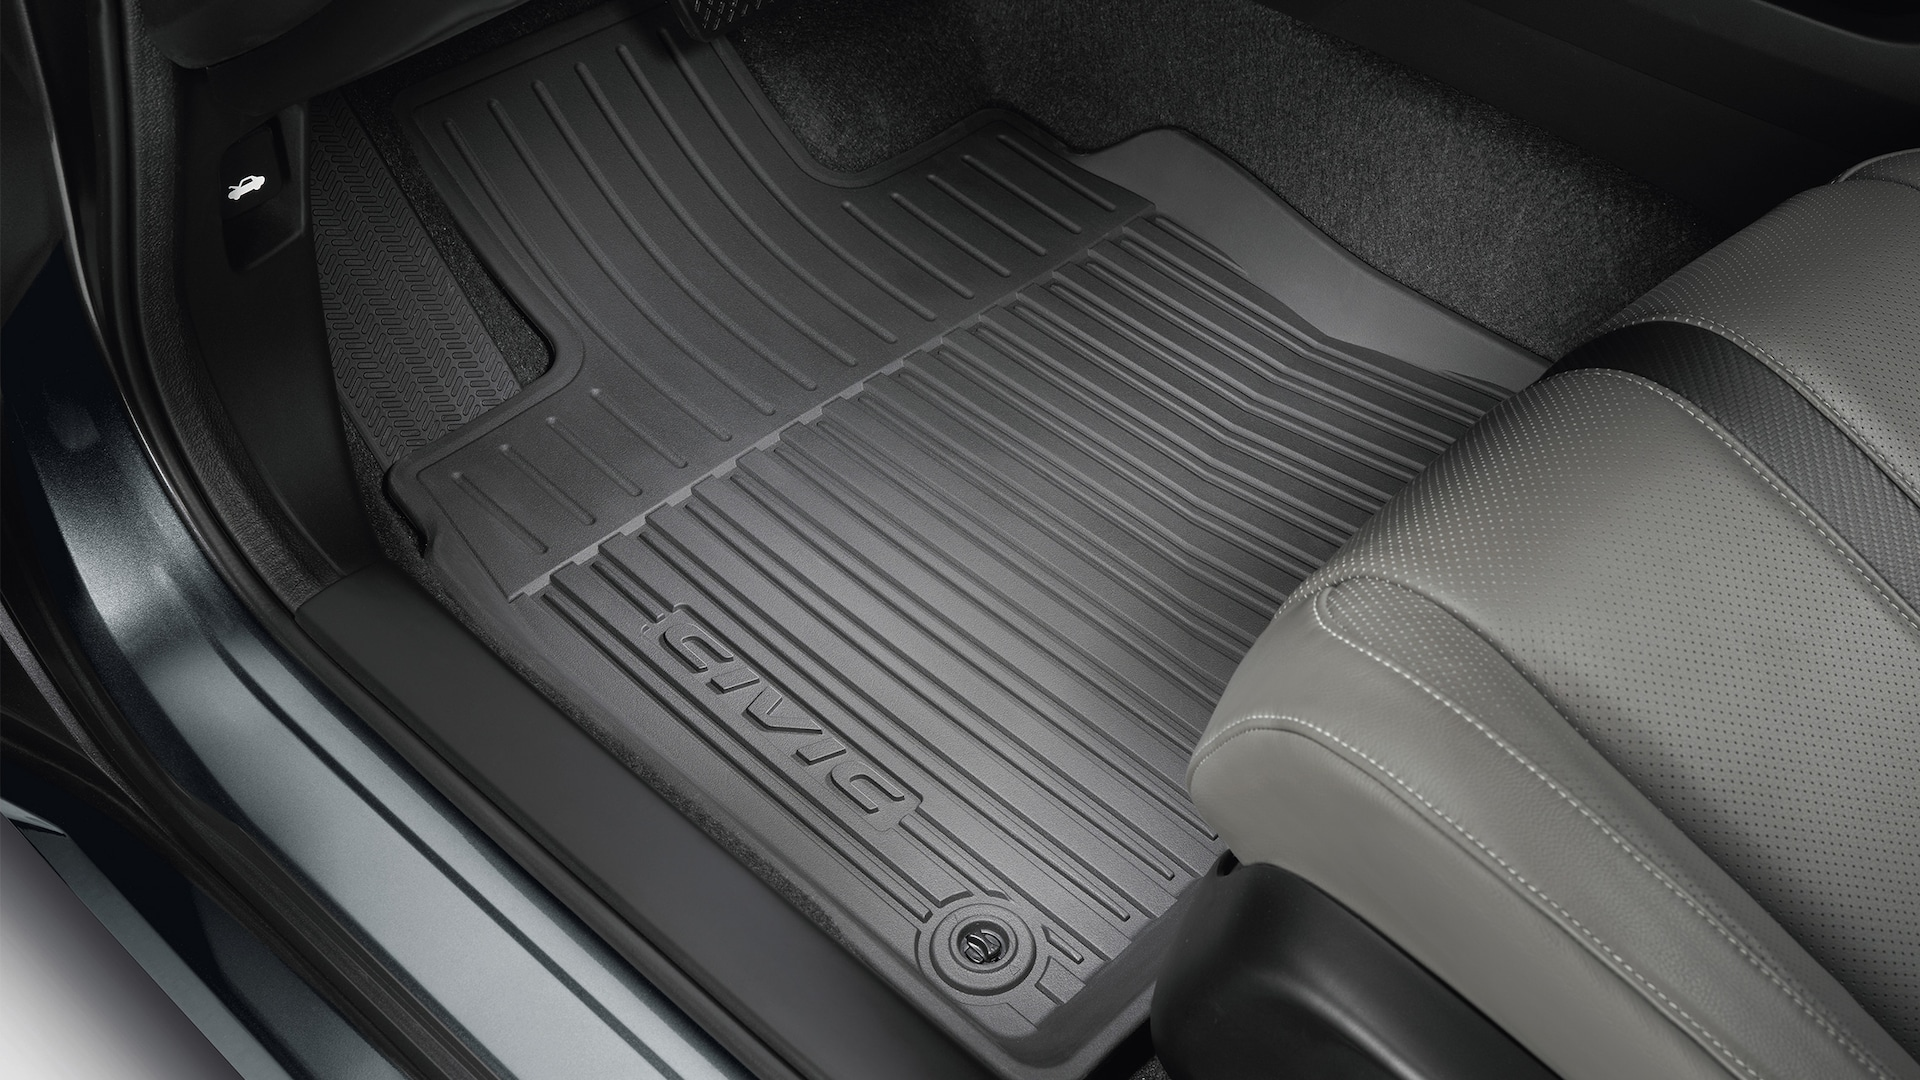 Accessory all-season floor mat detail in the 2020 Honda Civic Coupe.